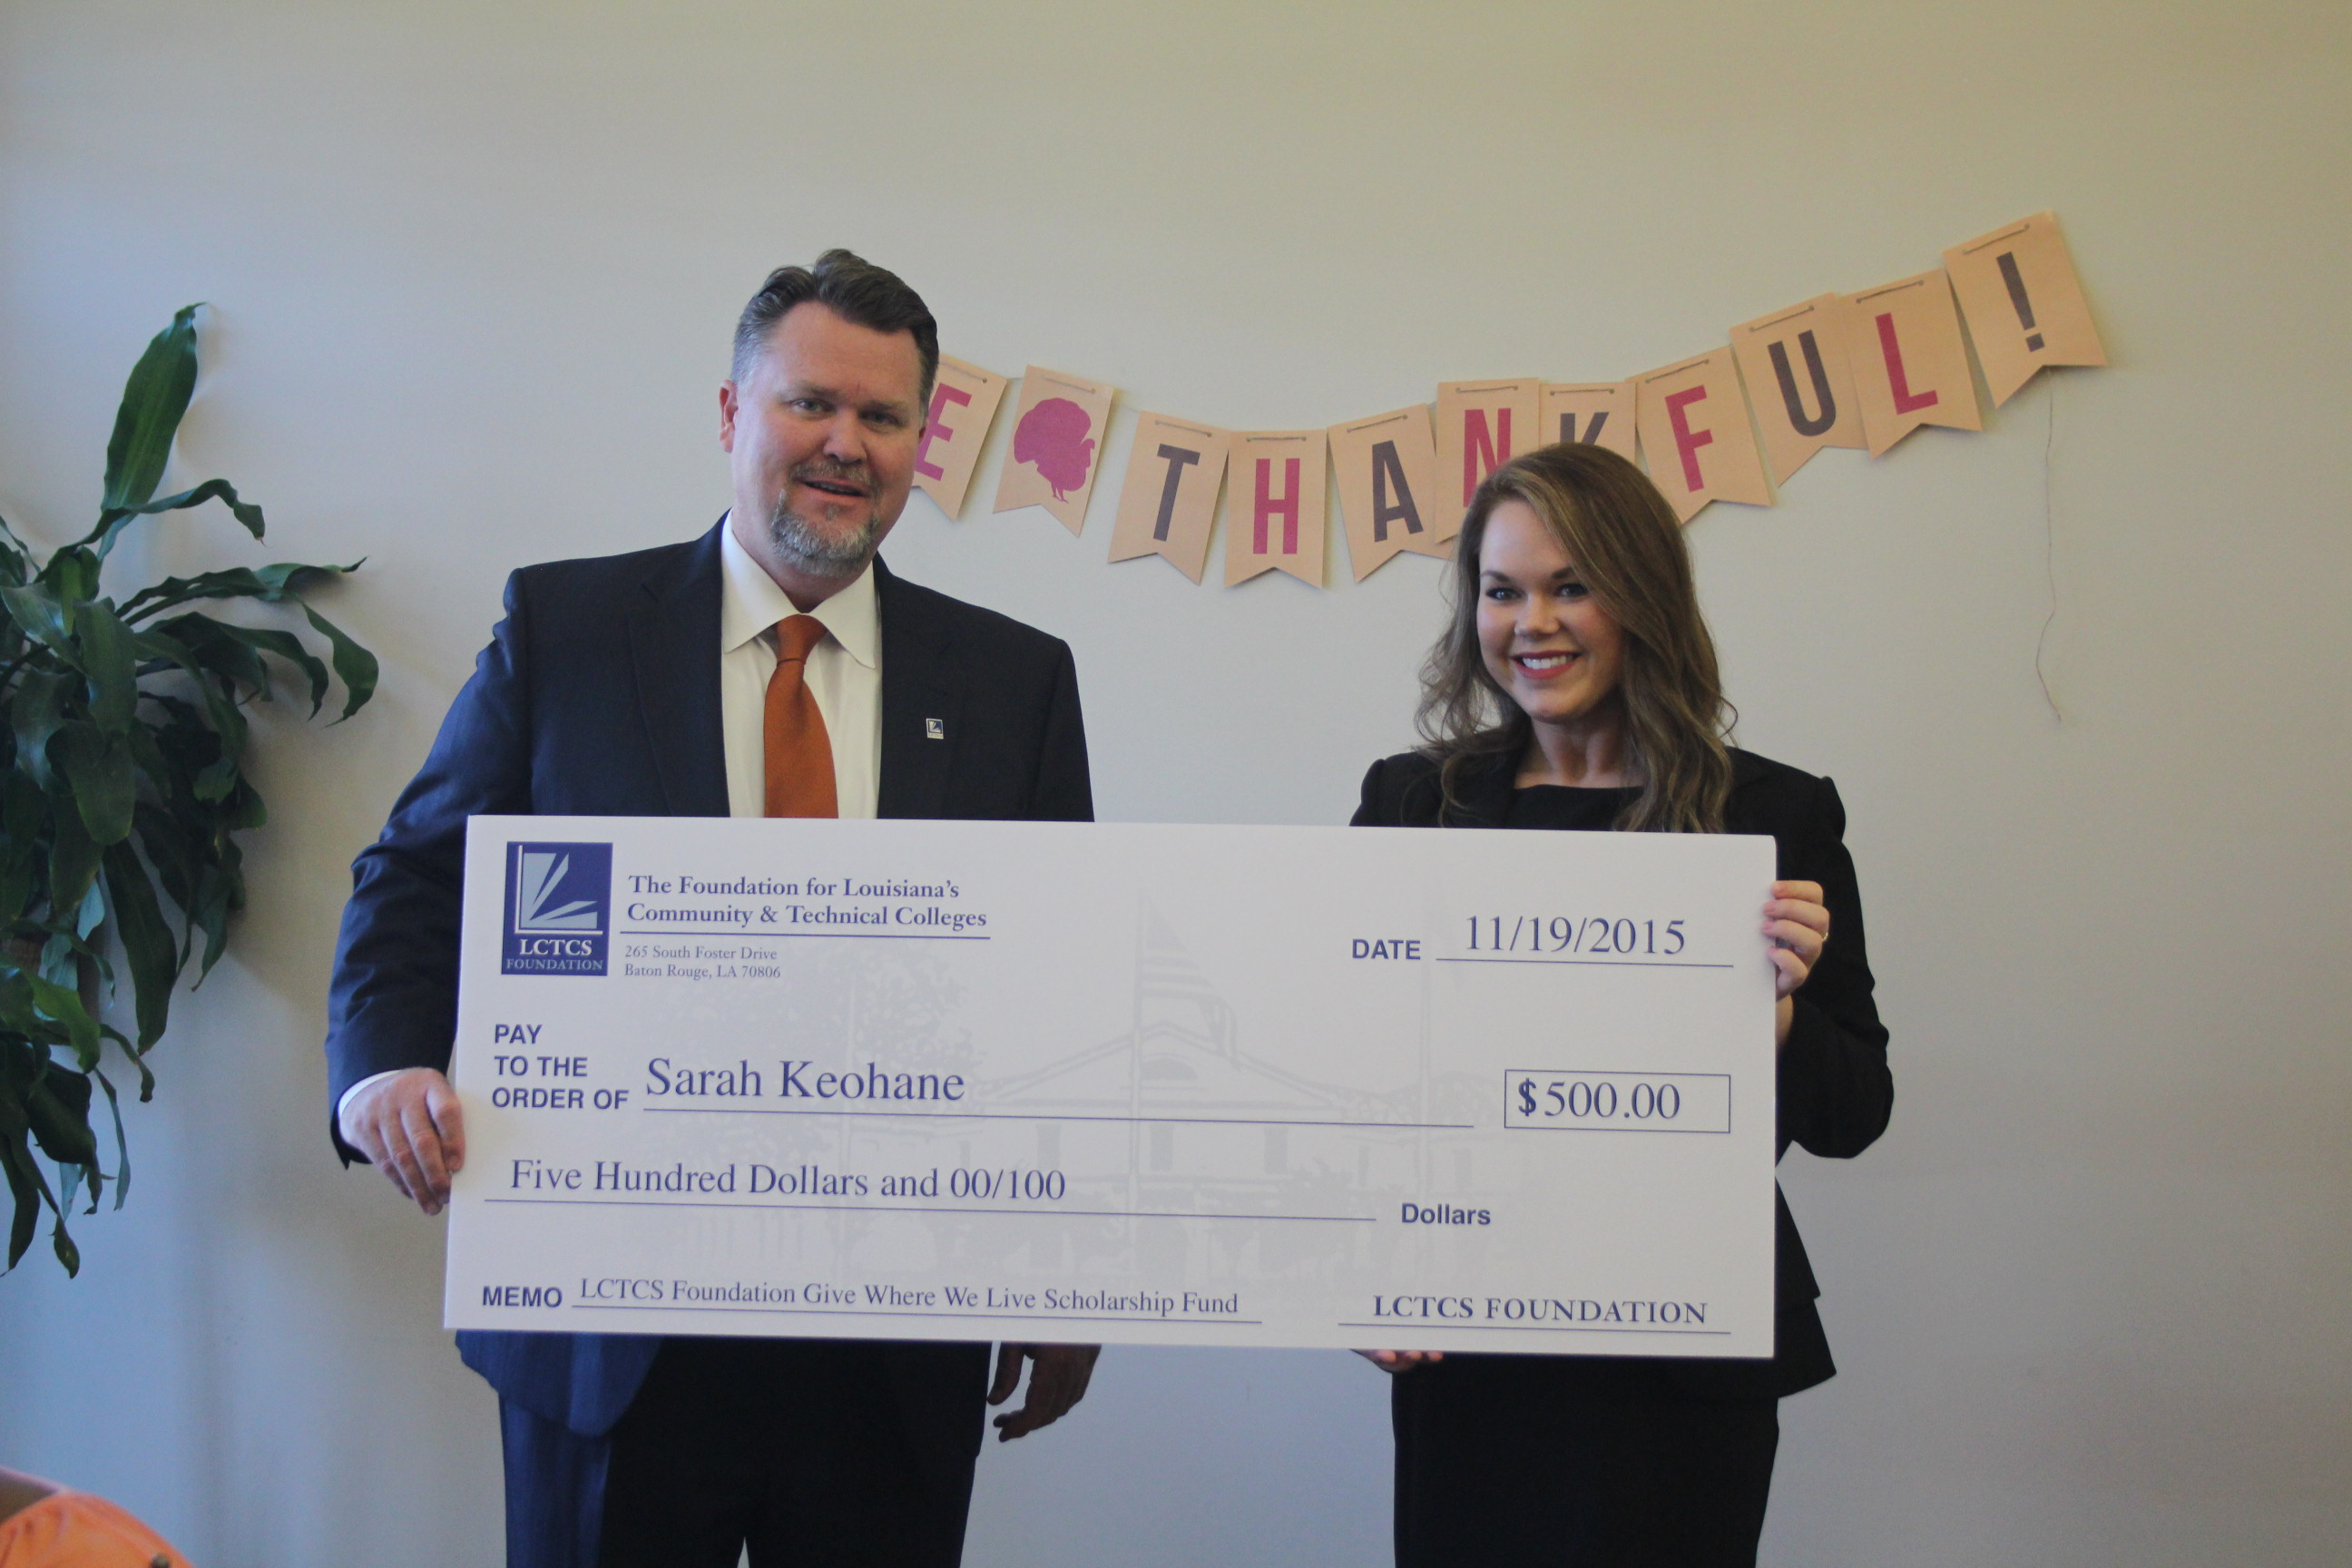 Sarah Keohane accepting a check for the Give Where We Live Scholarship Fund